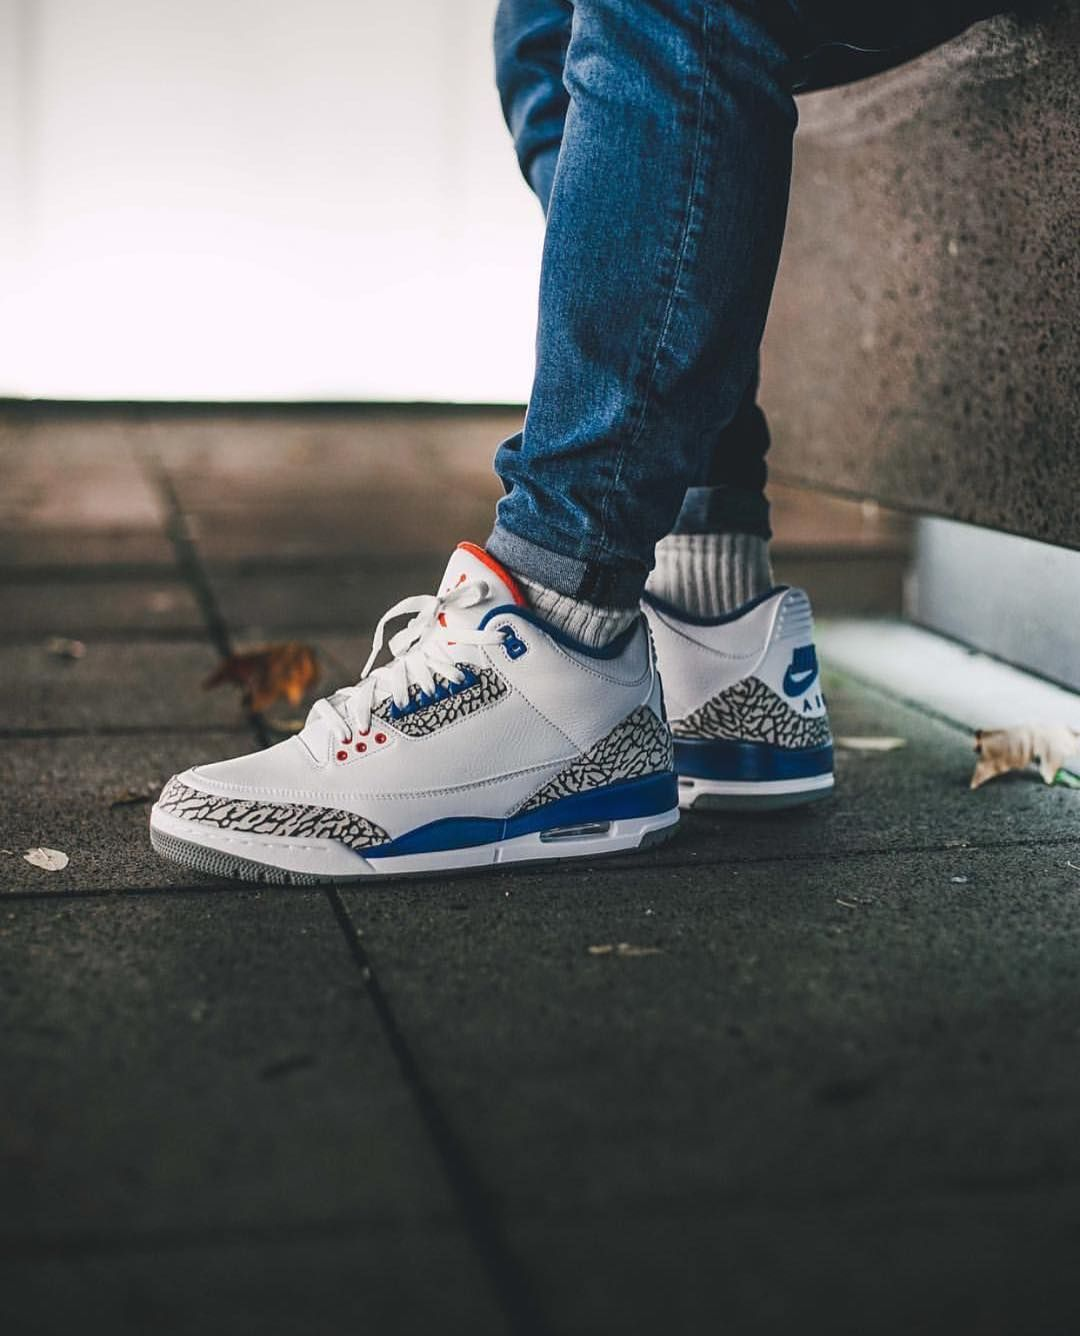 huge discount 687c8 82680 Air Jordan 3 Retro OG 'True Blue' (via Kicks-daily.com ...